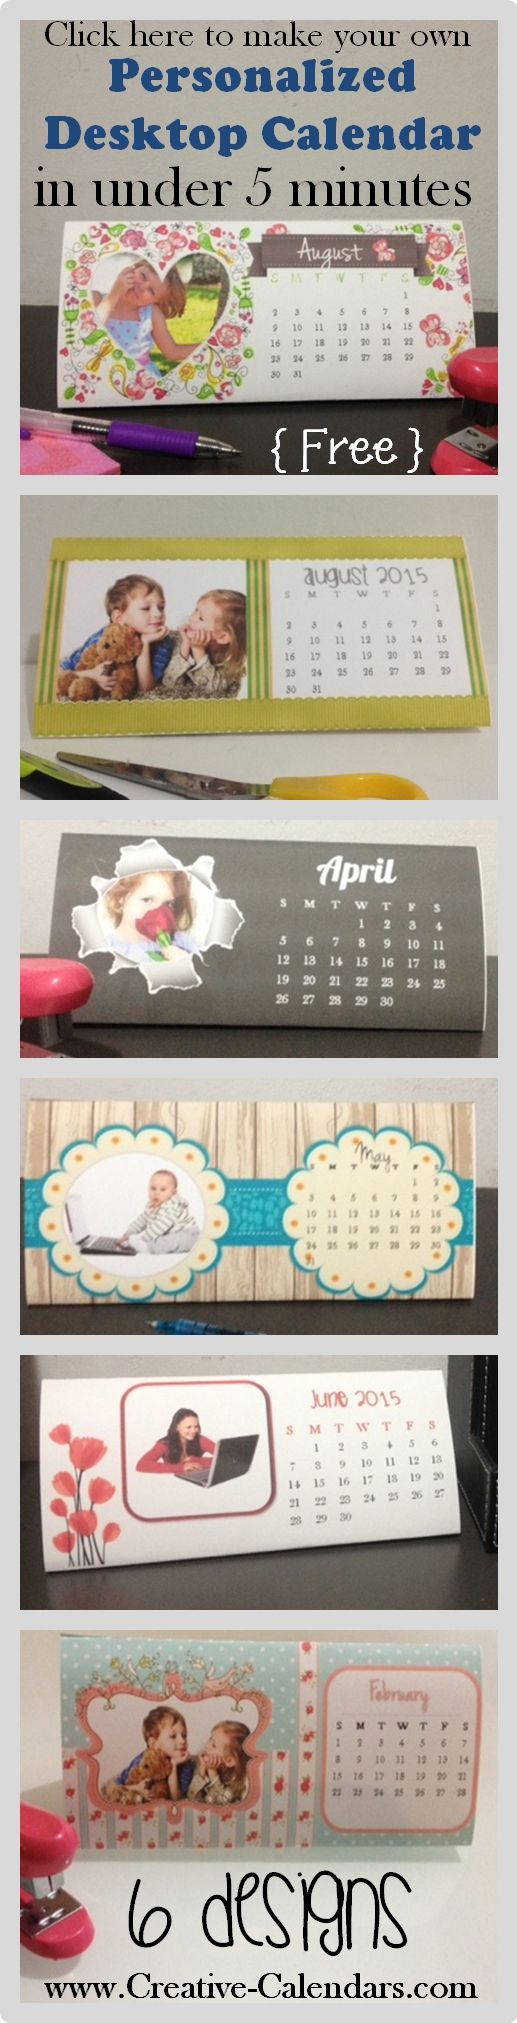 DIY desktop calendar printable - add your own photos with our free calendar maker - step by step instructions to make this calendar in under 5 minutes. 100% free!